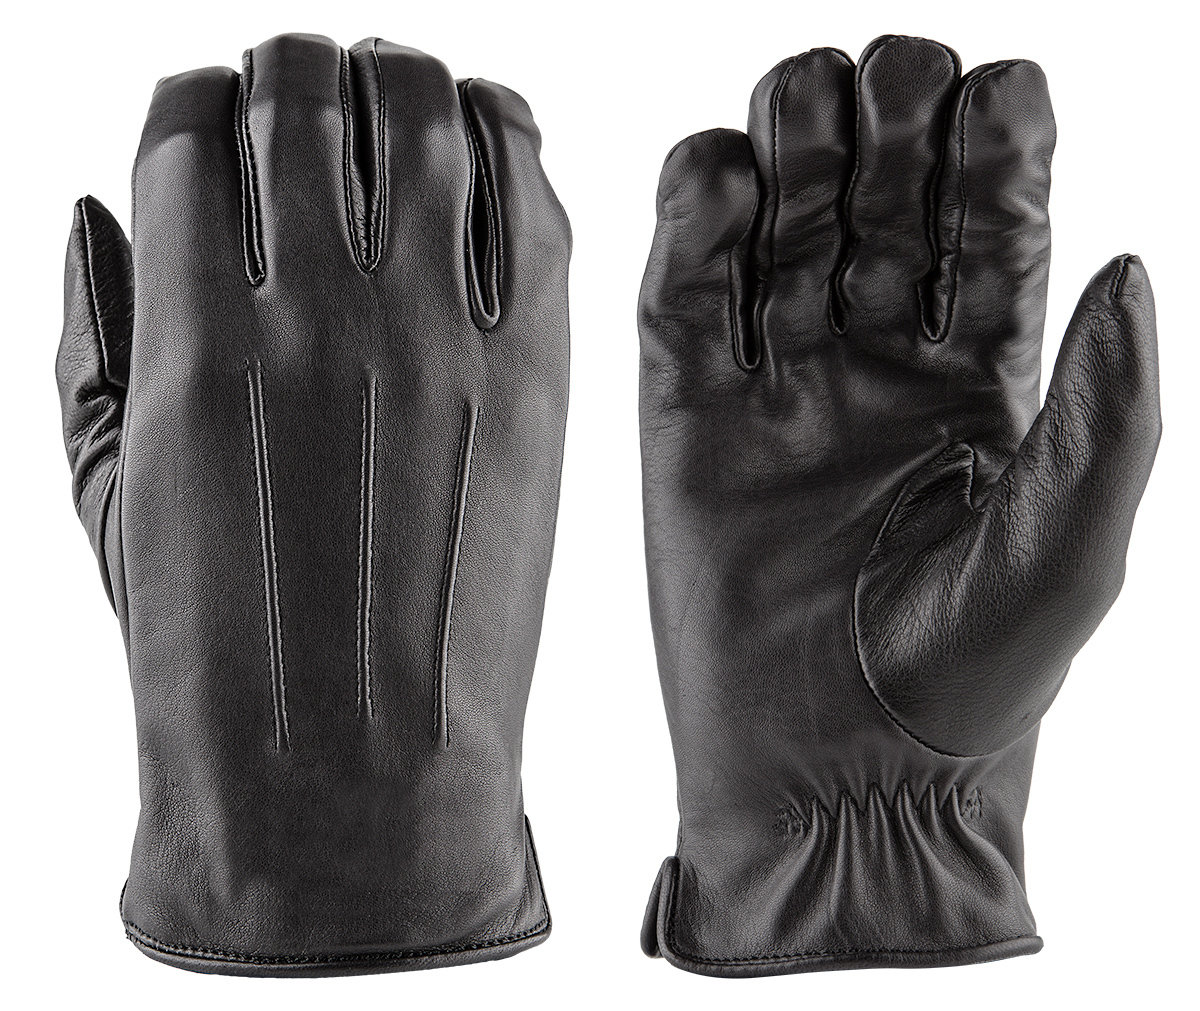 LUXE Deer Skin Leather Gloves w/ Faux Fur Lining DLD50-LX